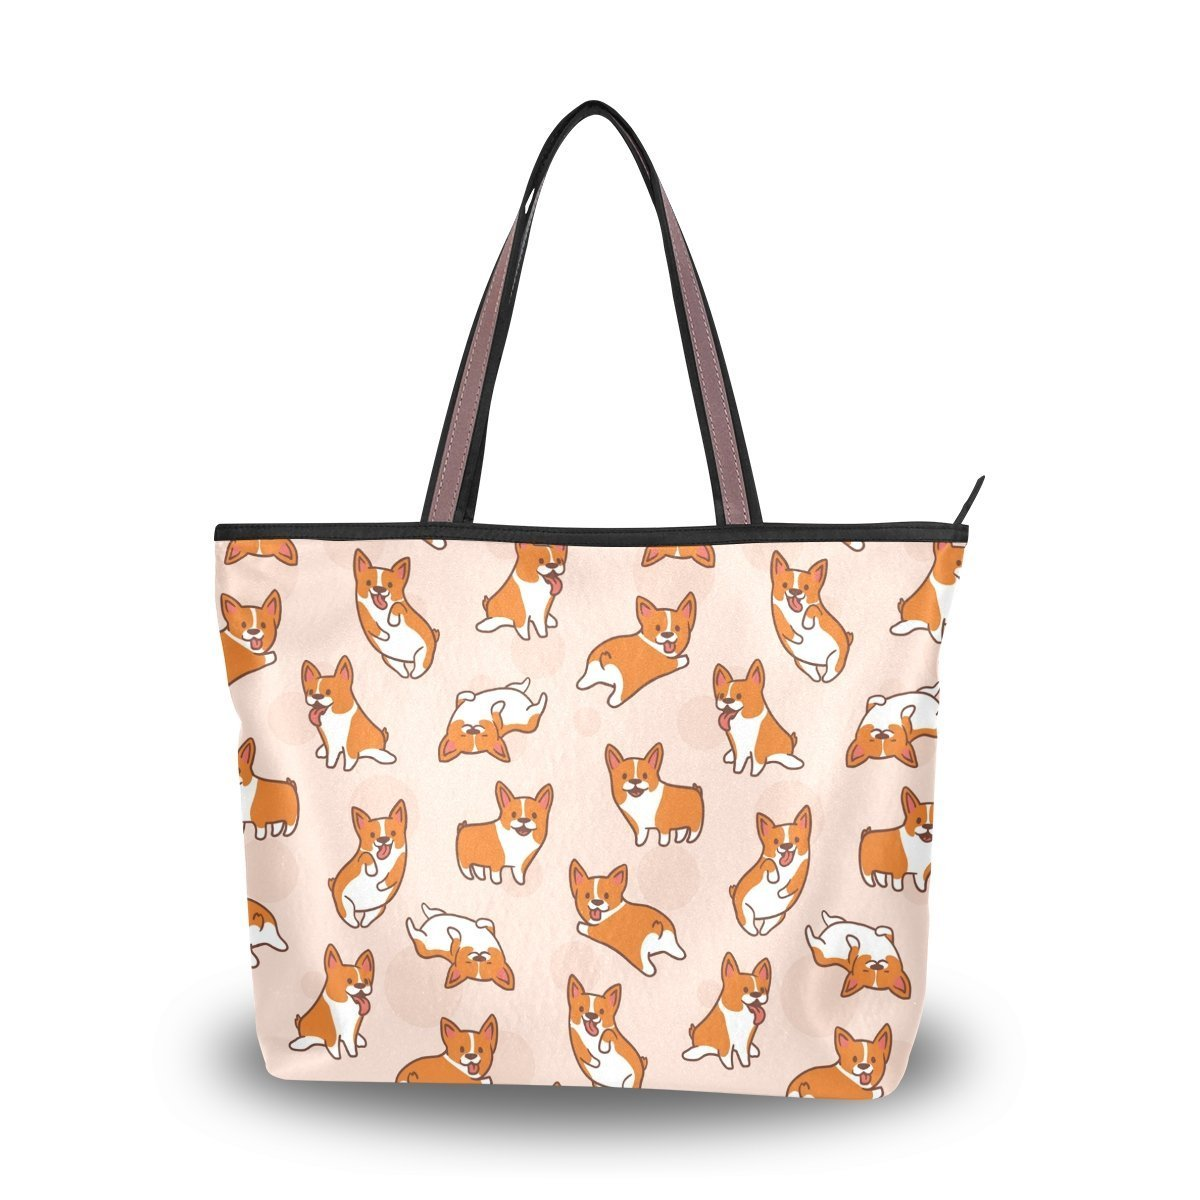 Cartoon Corgis Pattern Tote Bags Women's Stylish Travel Totes Fabric Zippered Tote for Shopping Handbag